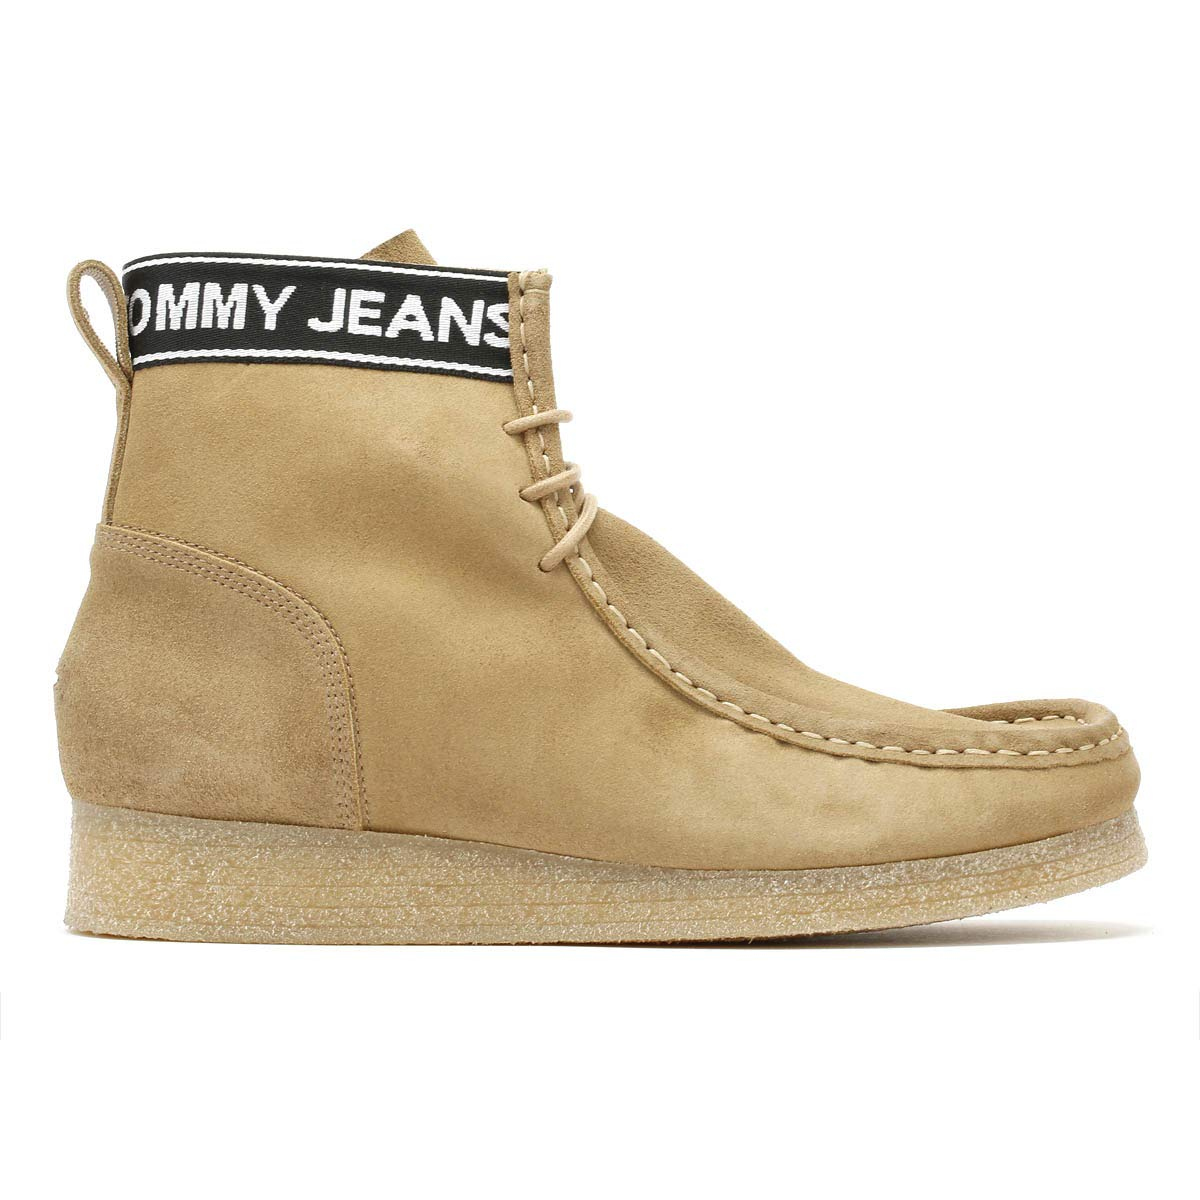 Tommy Hilfiger Jeans Crepe Outsole Wallaby Hommes Sand Beige